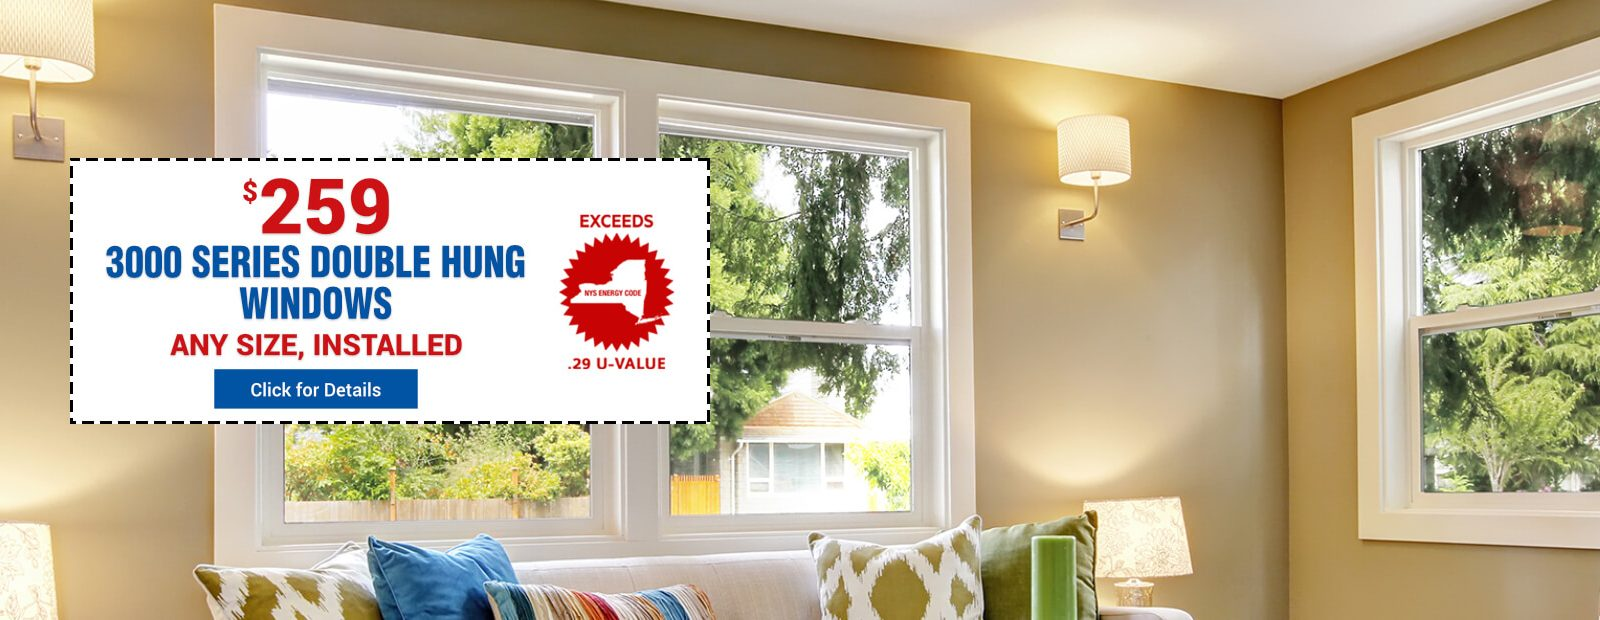 3000 Series Double Hung Windows